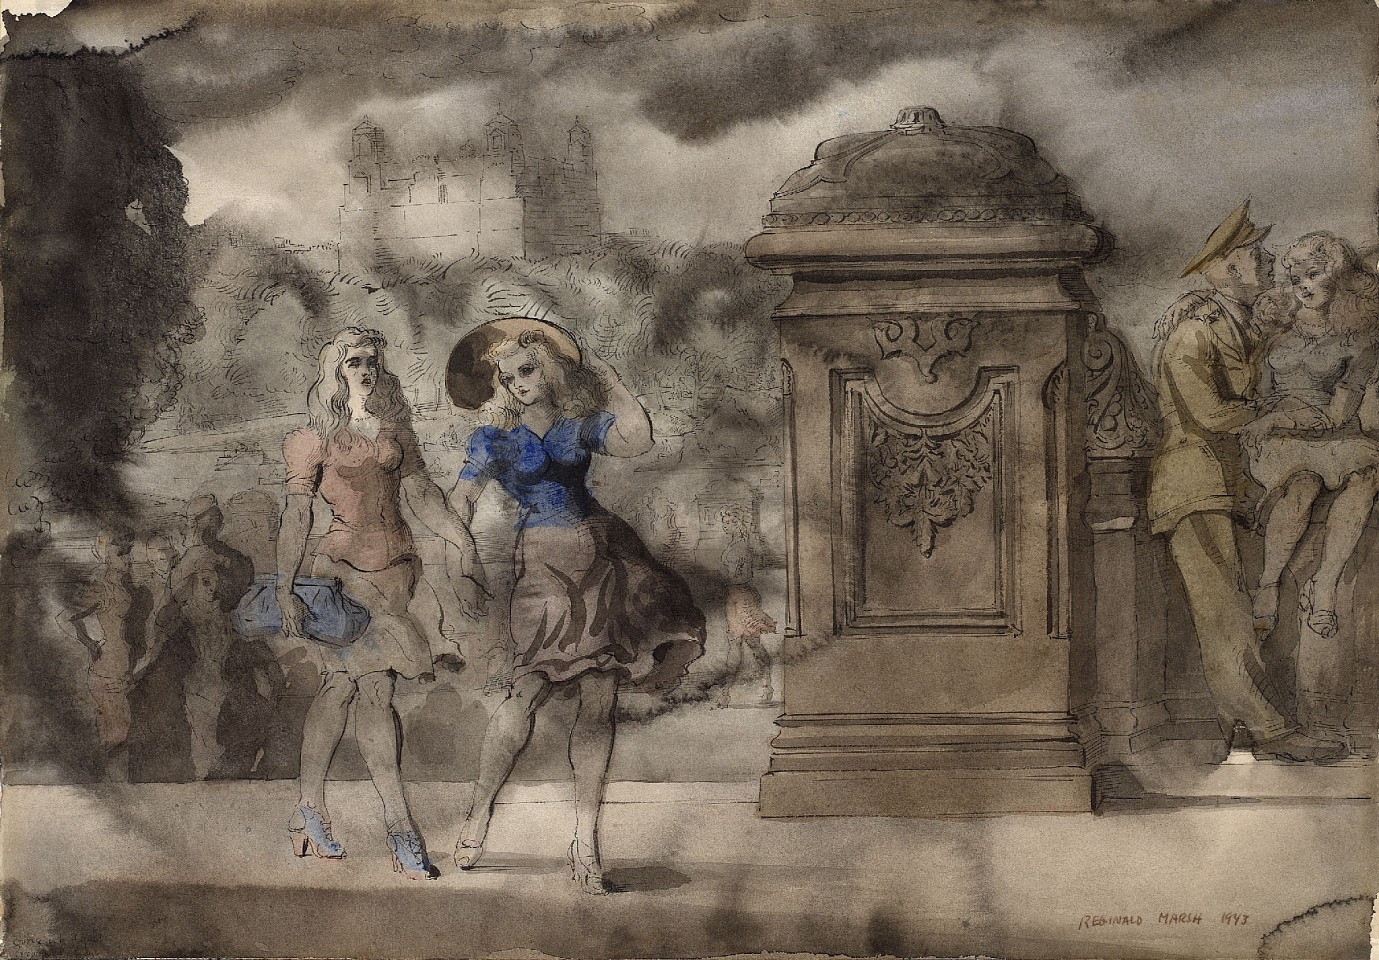 Reginald Marsh ,   Walking in the Park  ,  1943     Chinese ink and watercolor on paper ,  14 x 19 15/16 in. (35.6 x 50.6 cm)     RM190401